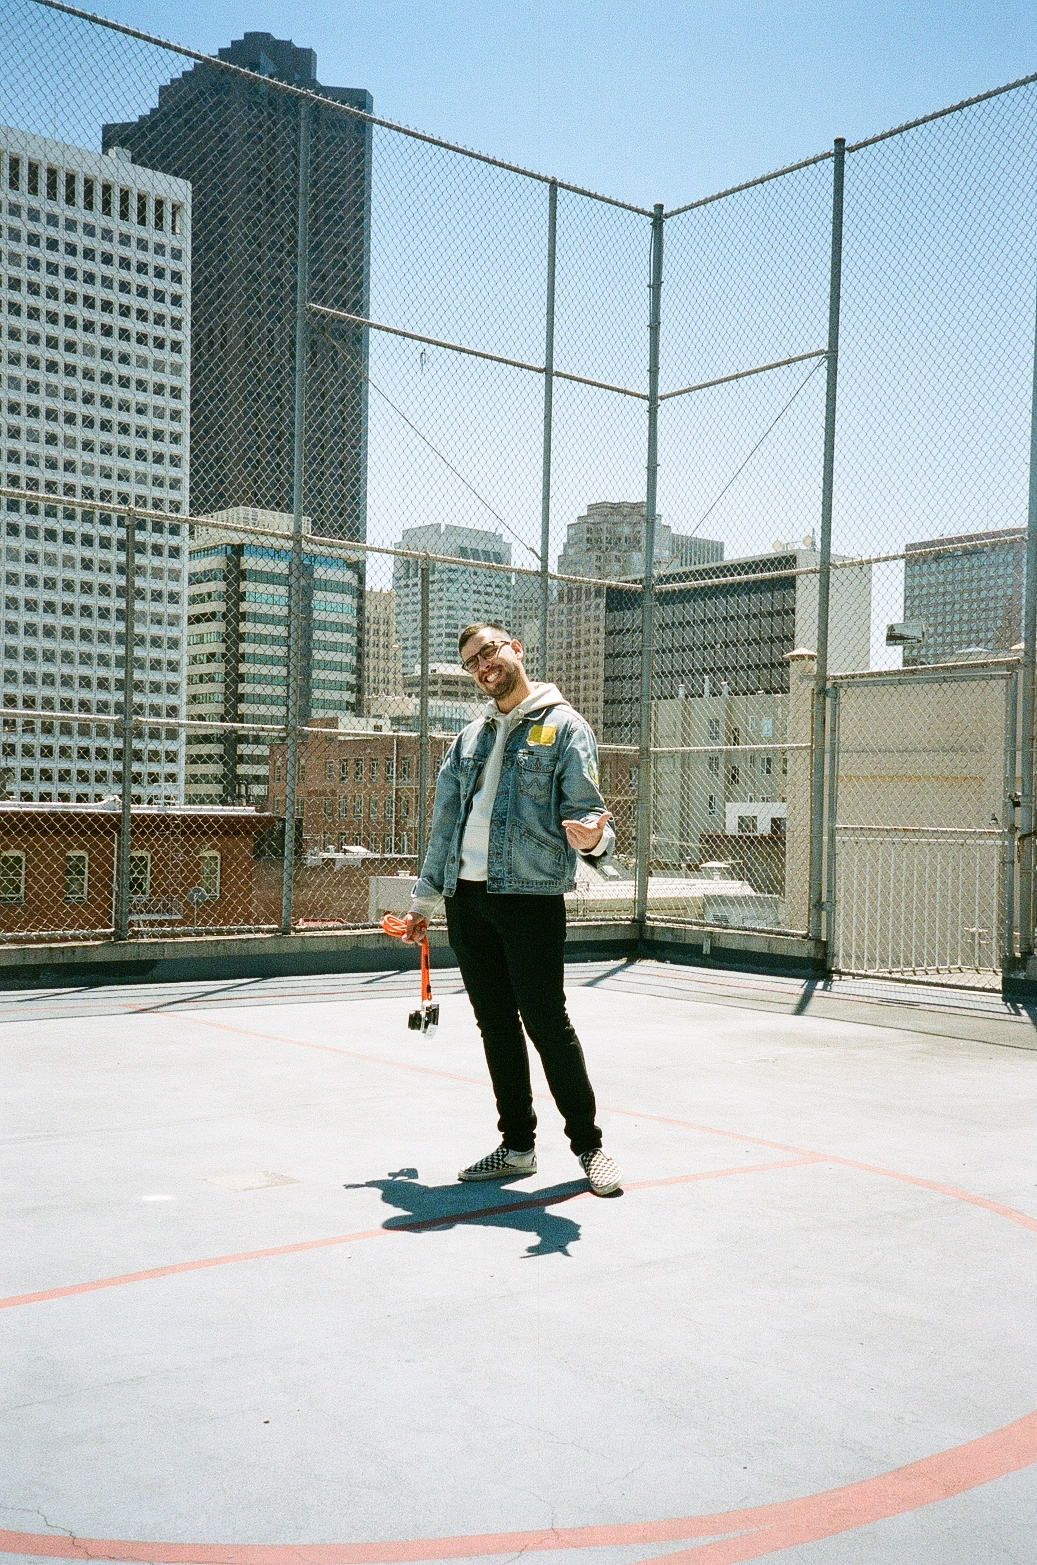 Pursuit of Happiness basketball rooftop photo of photographer in San Francisco